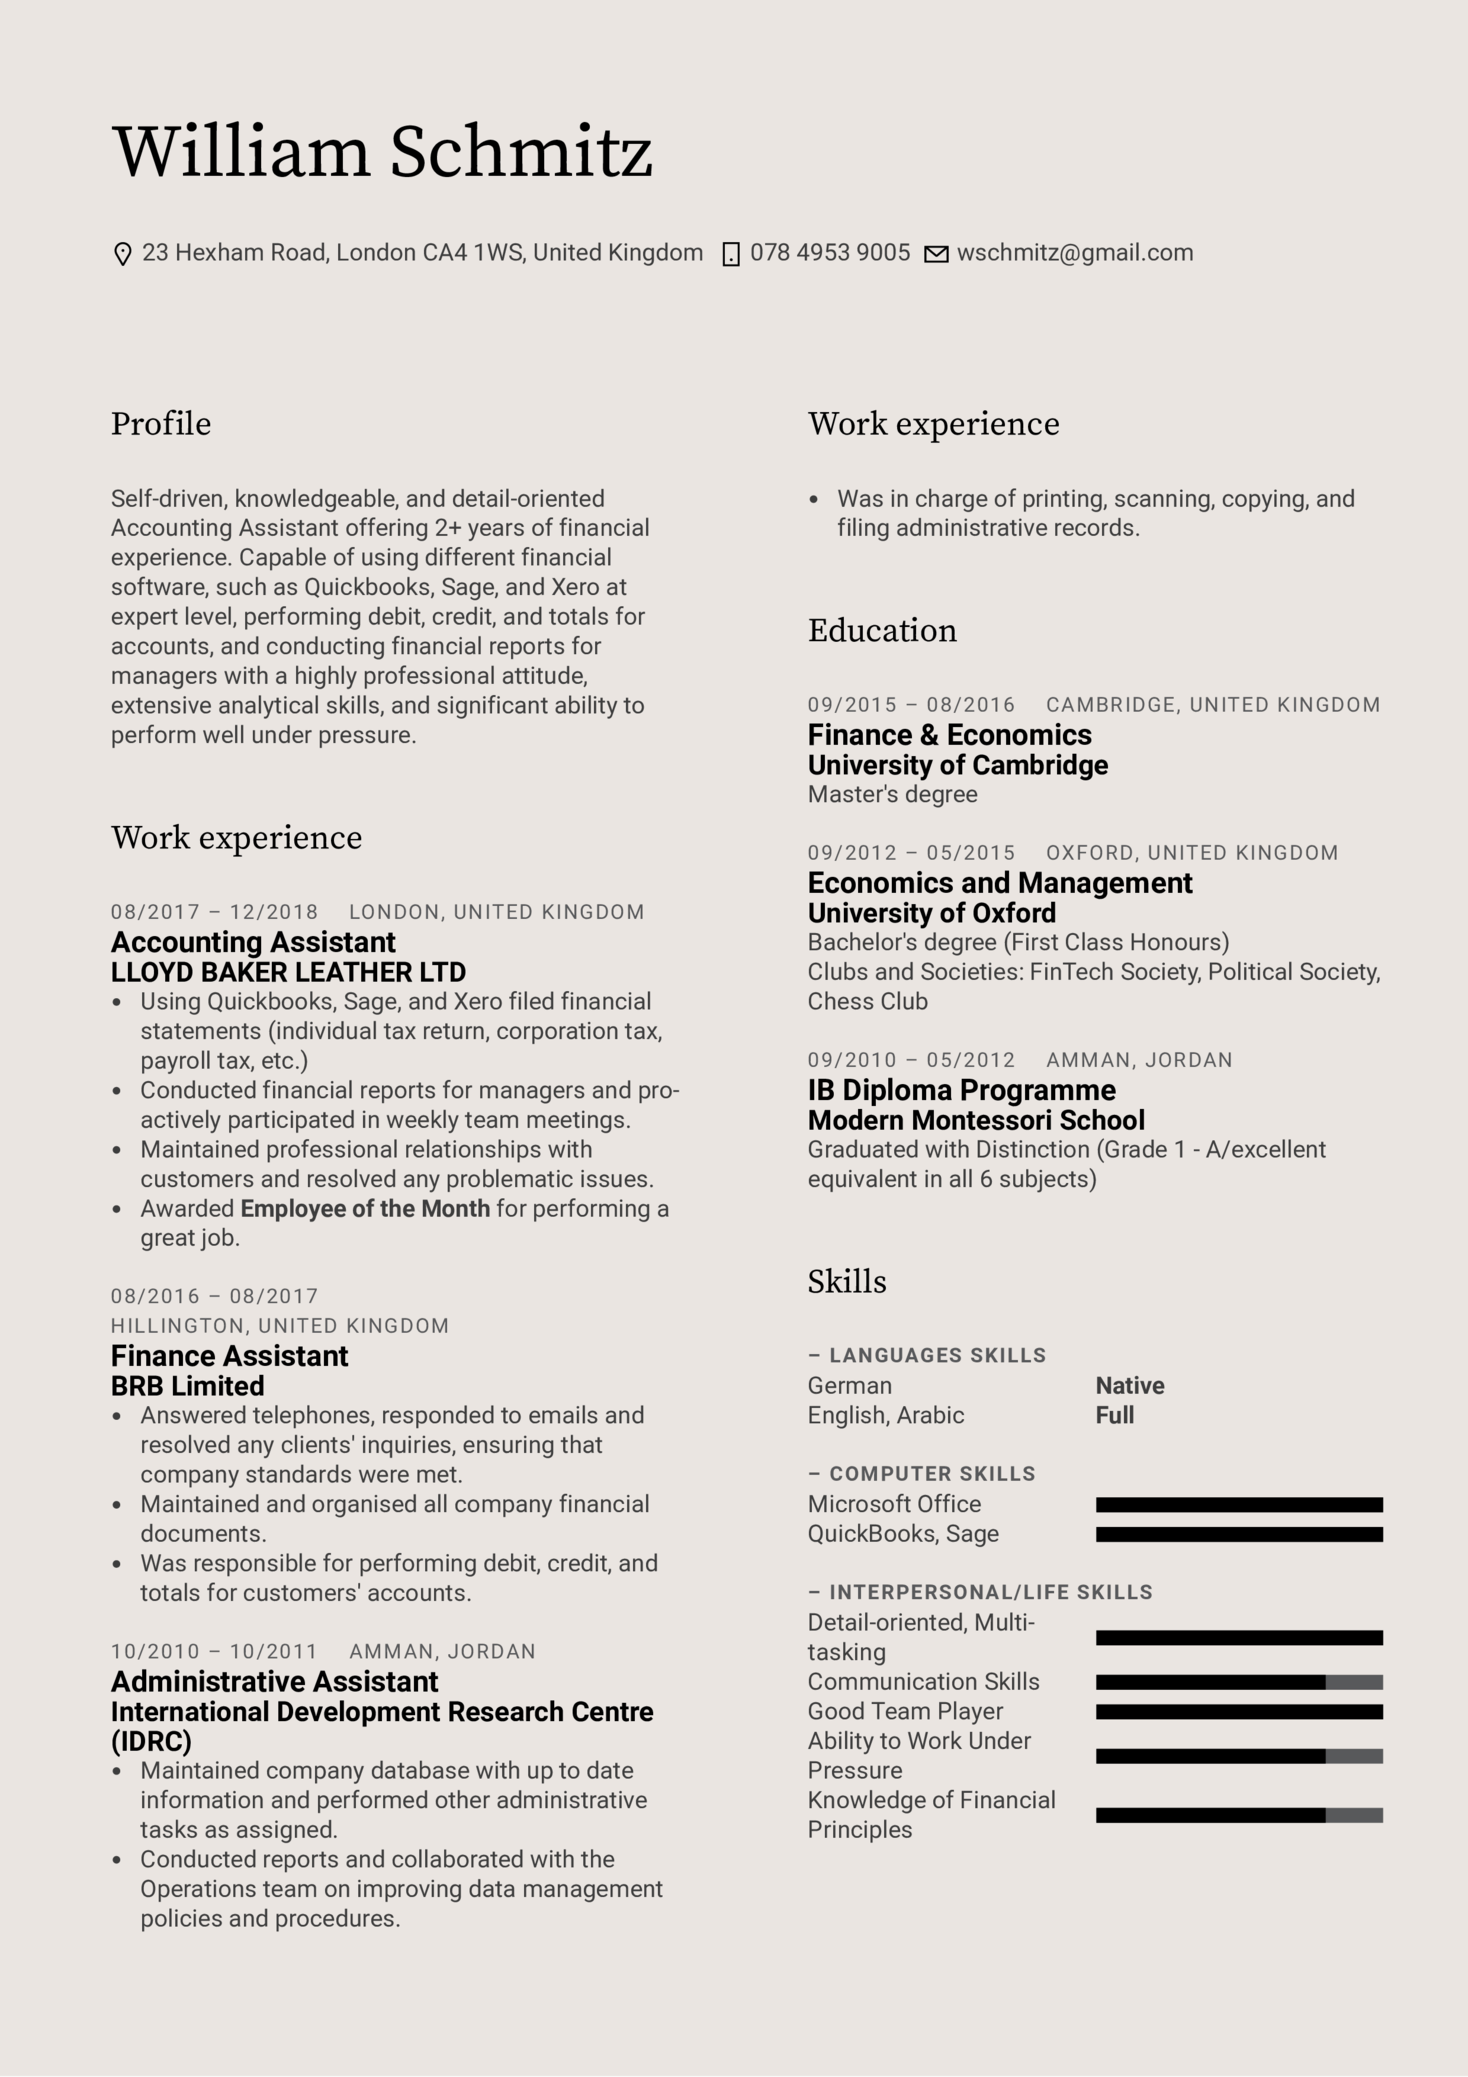 Accounting Assistant Resume Template (parte 1)